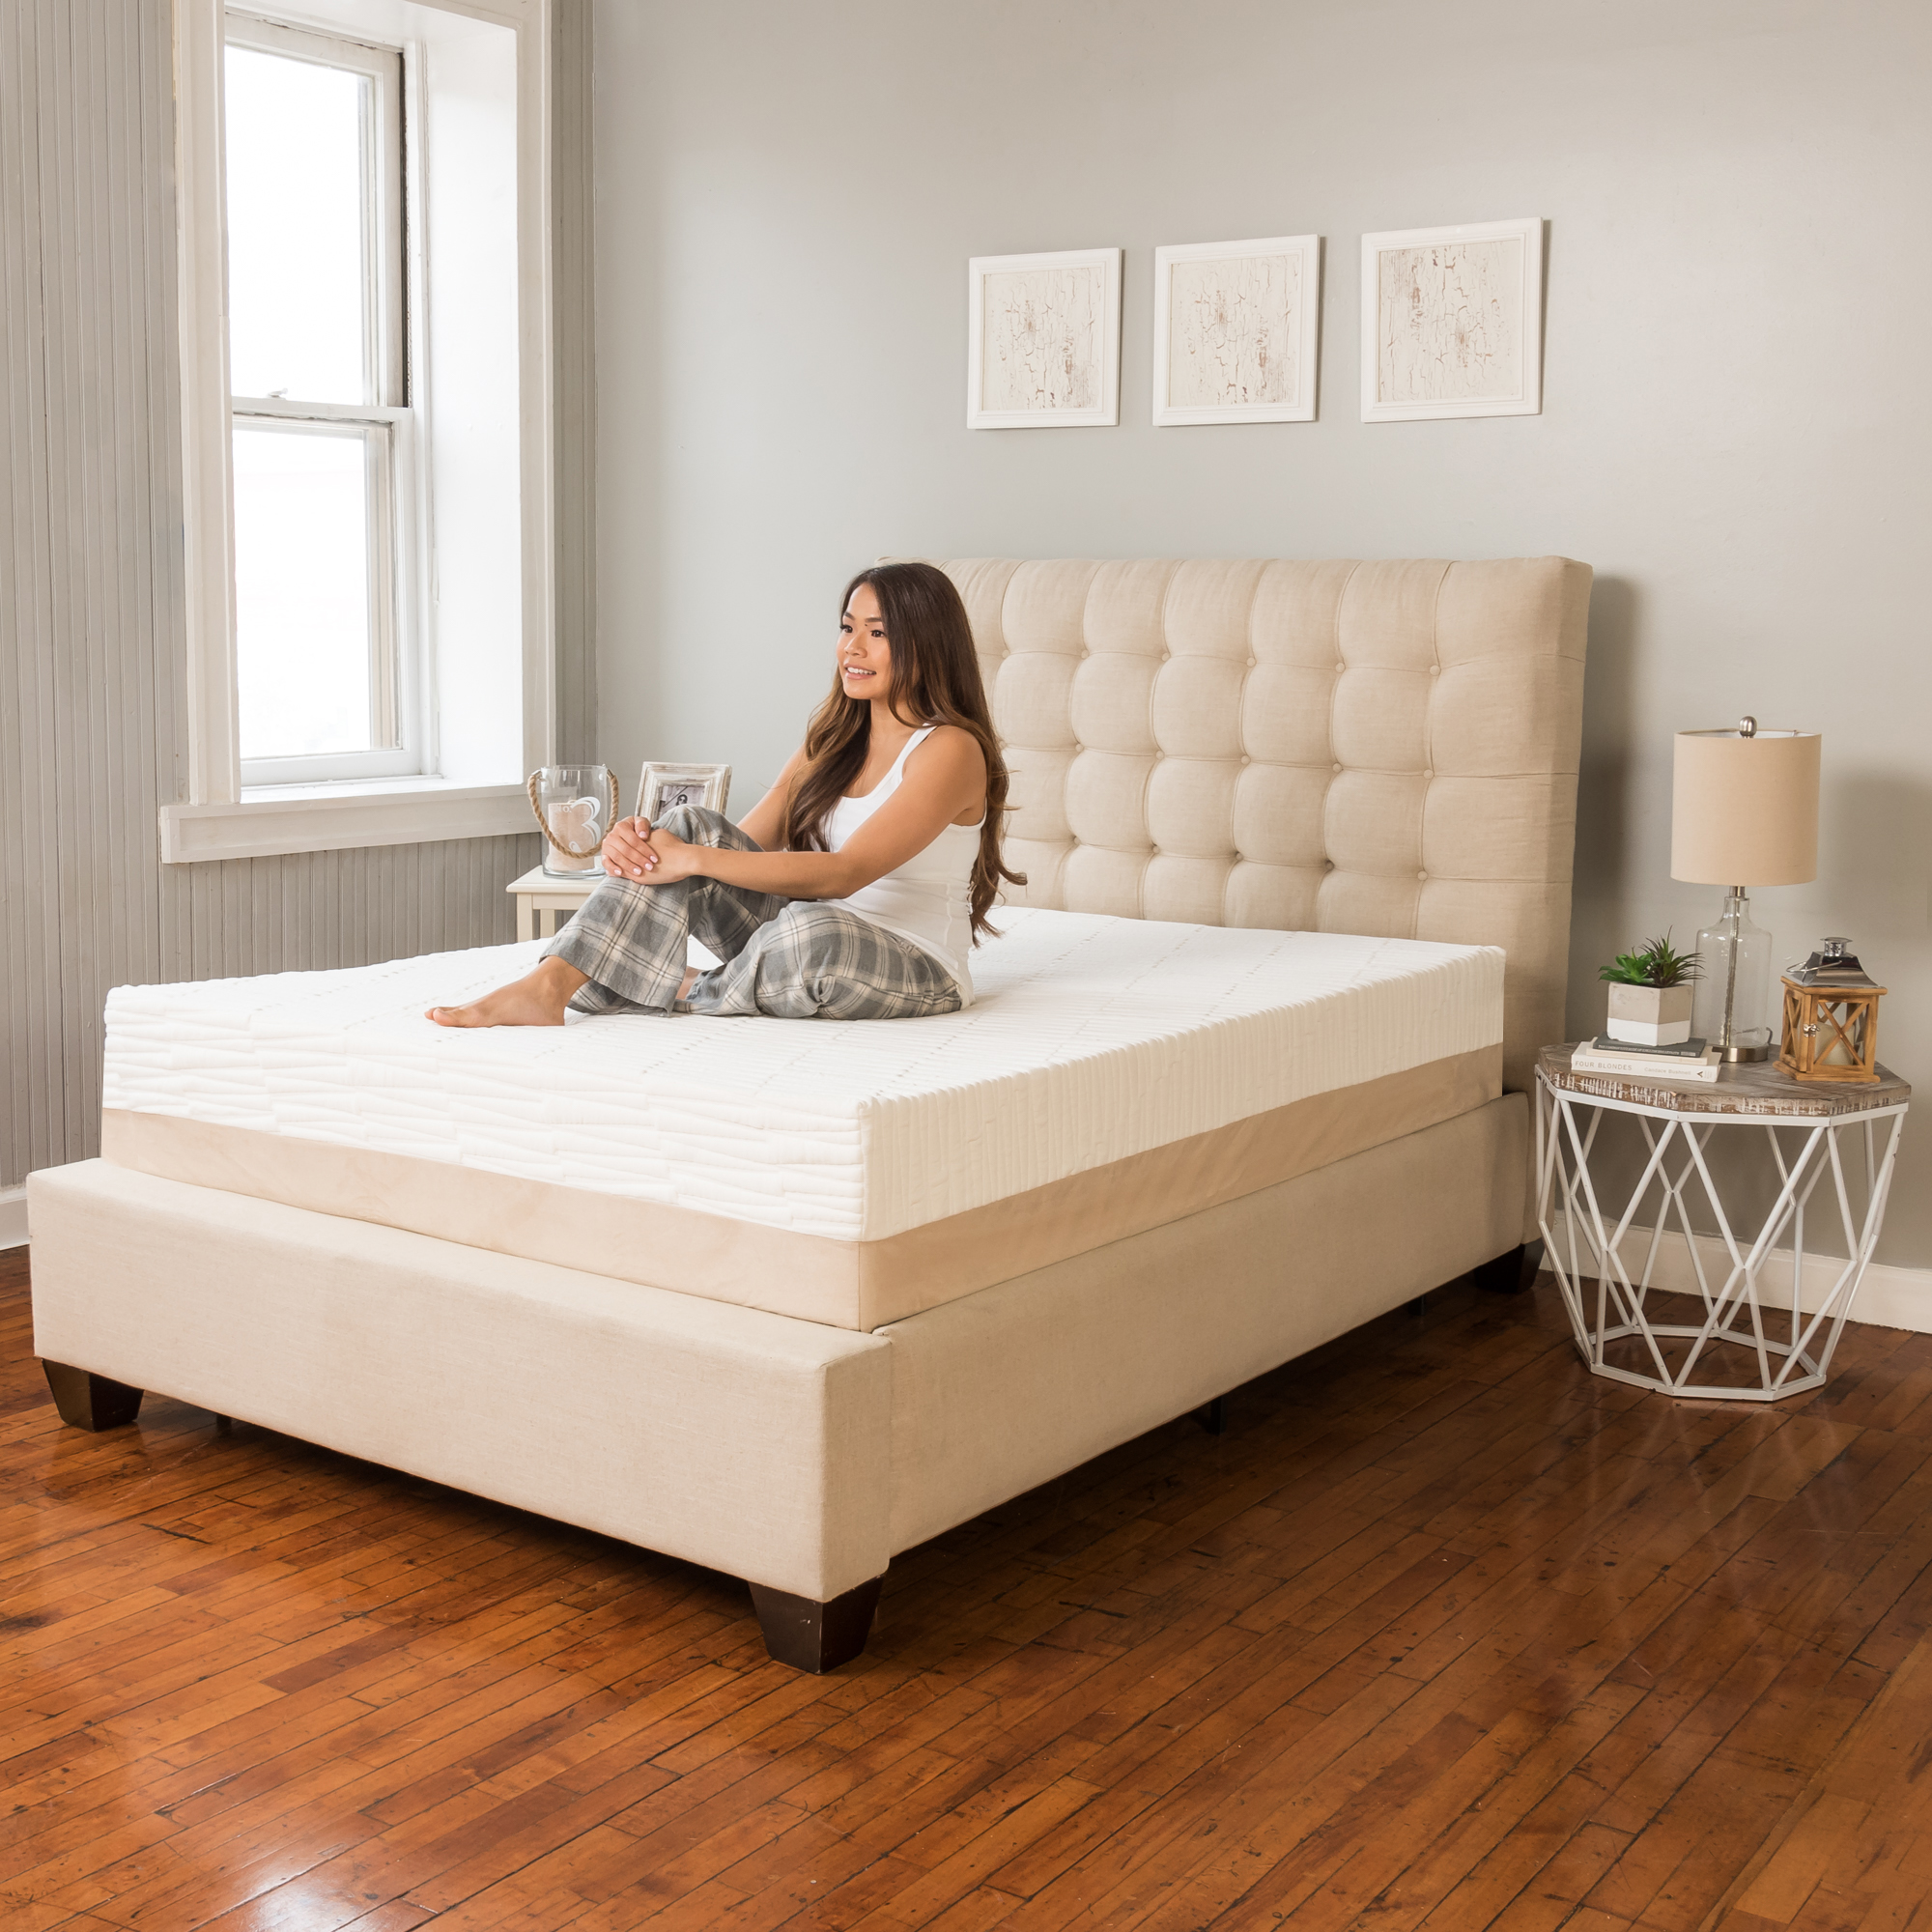 Modern Sleep Natural Sleep Kiera Talalay Latex Memory Foam 11-Inch Mattress, Multiple Sizes - Walmart.com